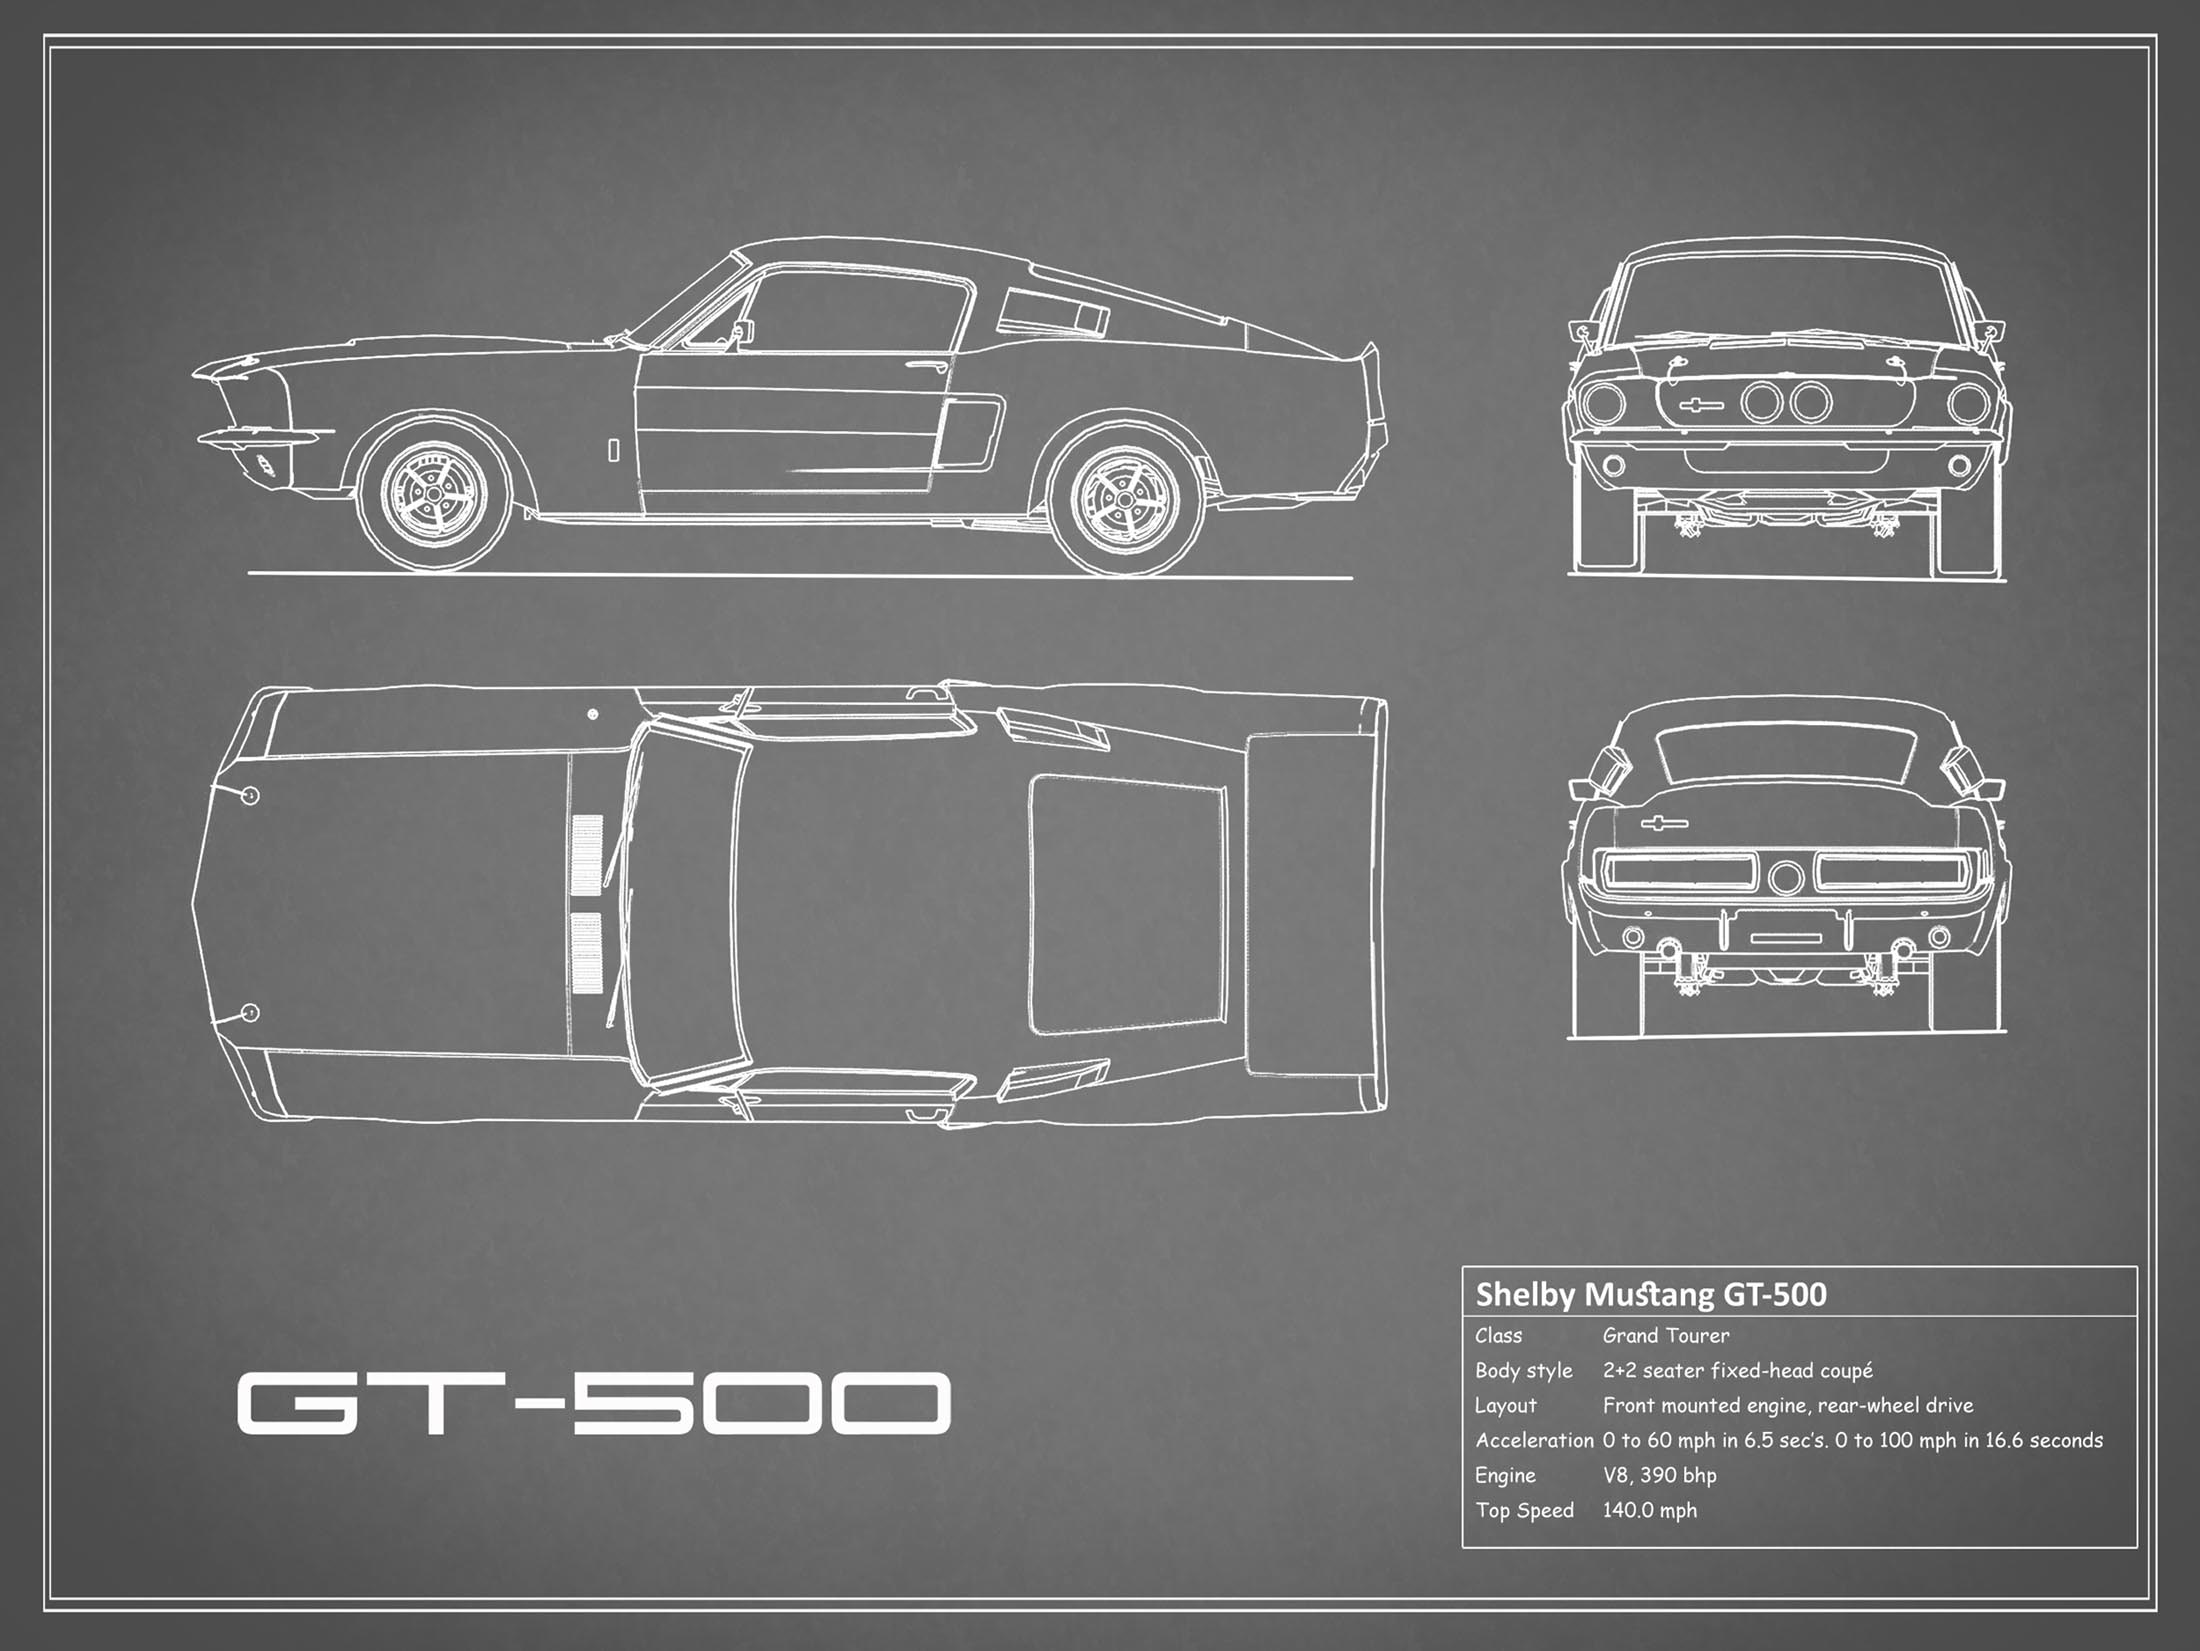 Shelby Mustang GT500 - Gray